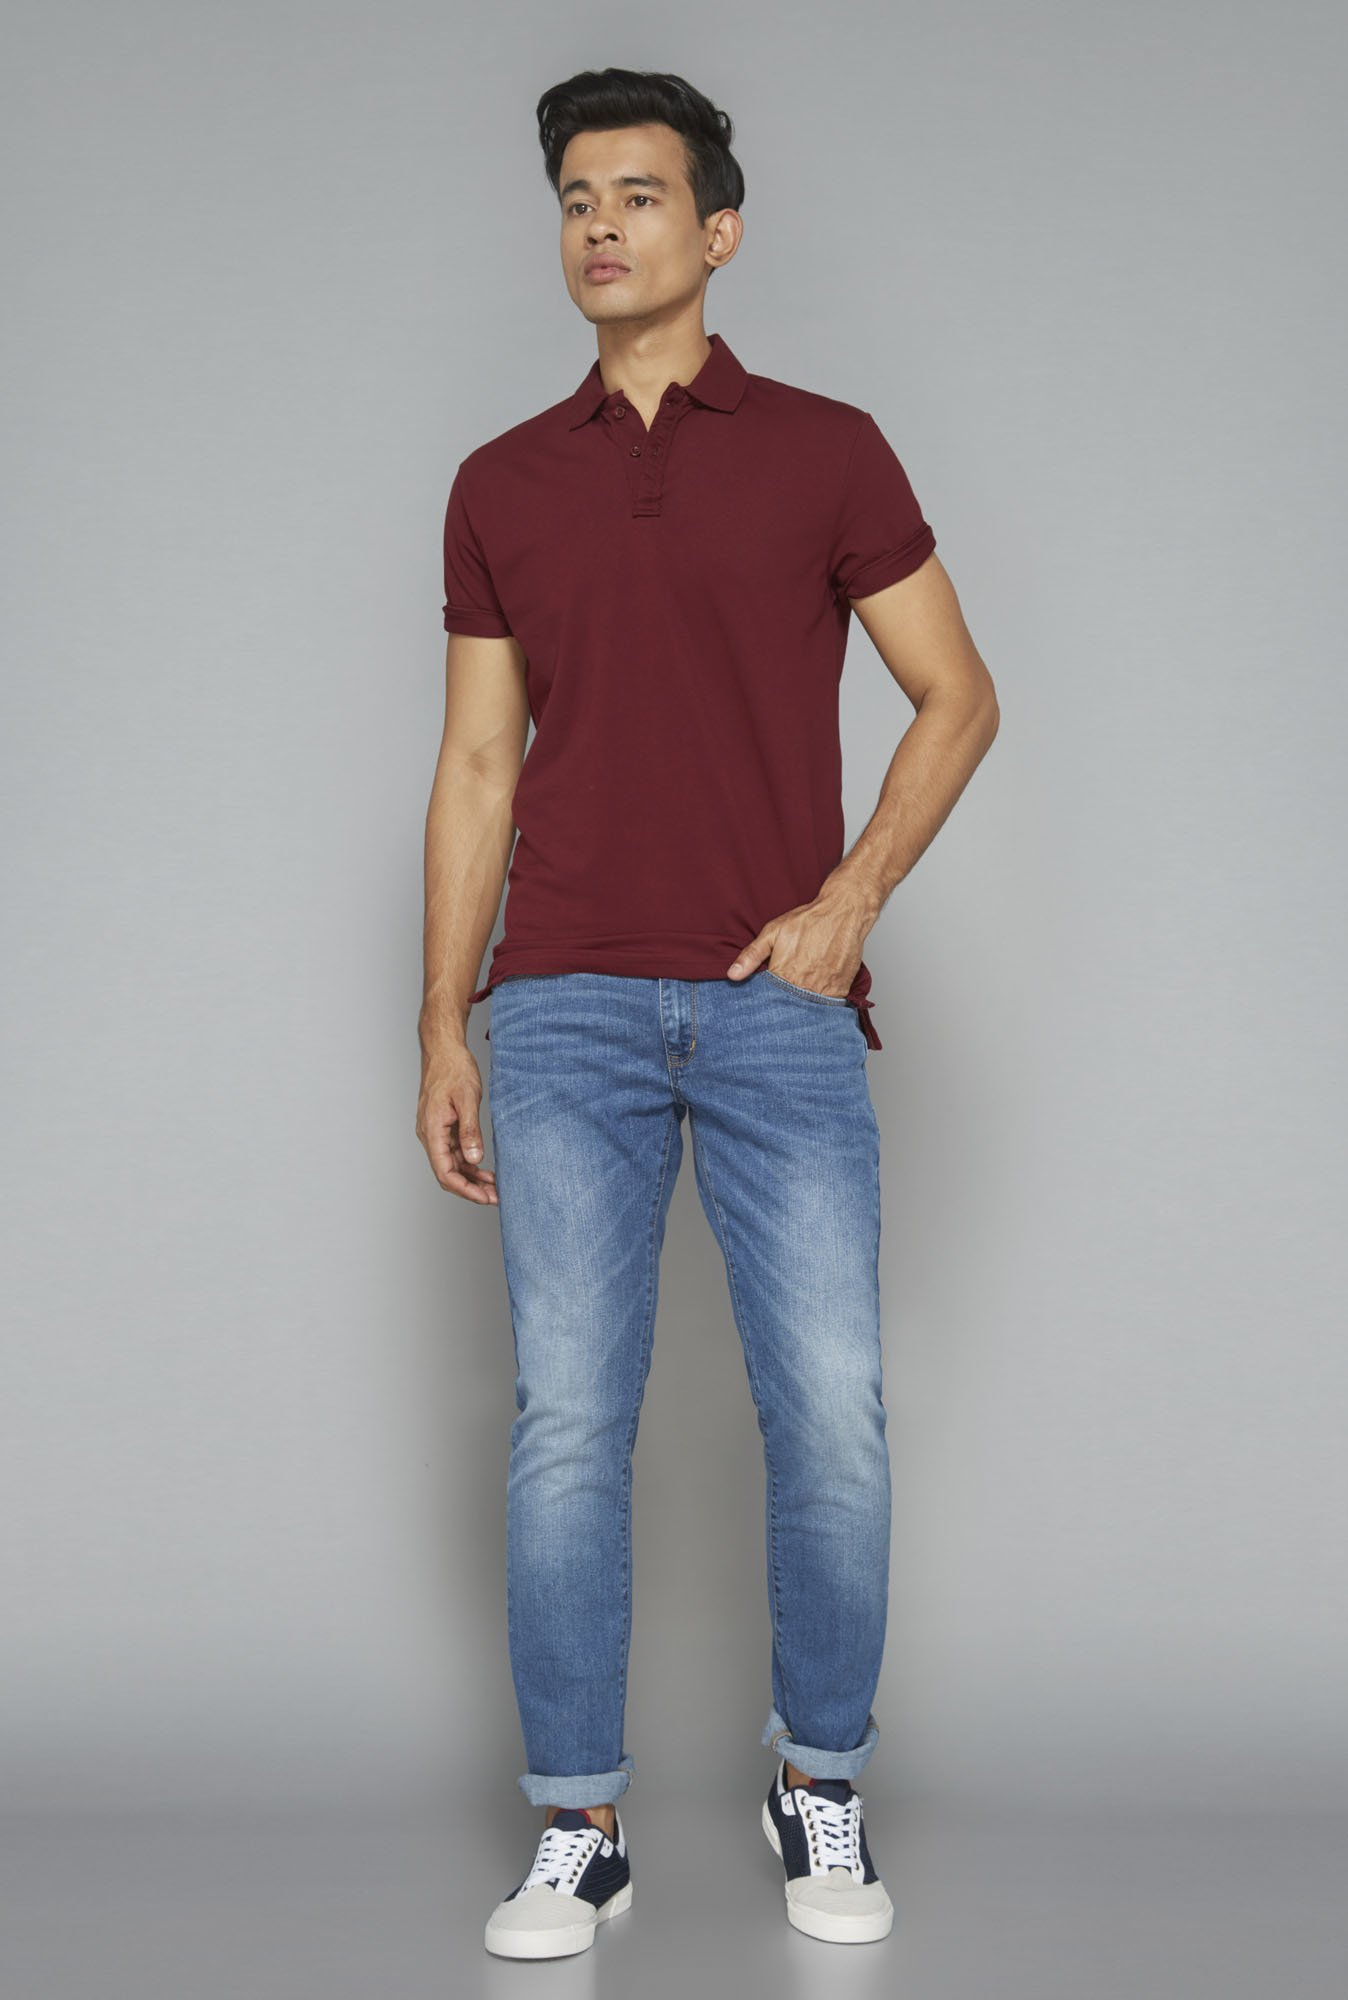 Nuon by Westside Maroon Solid T-Shirt